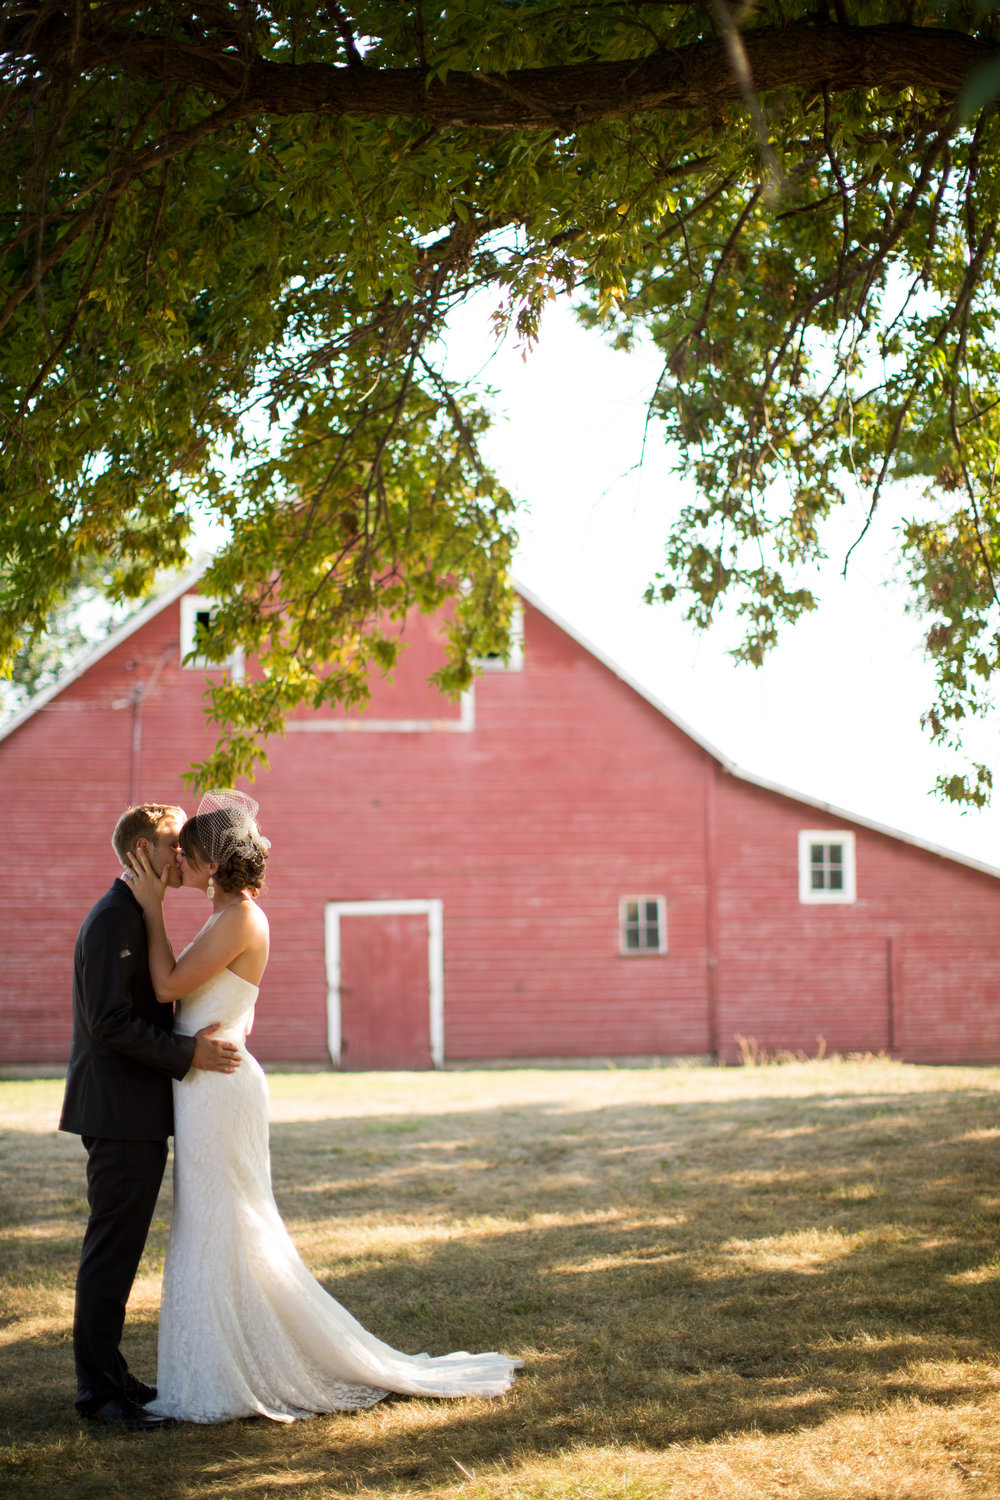 iowa-venue-fort-dodge-farm-outdoor-wedding-rustic-country-lace-strapless-dress-yellow-red-barn